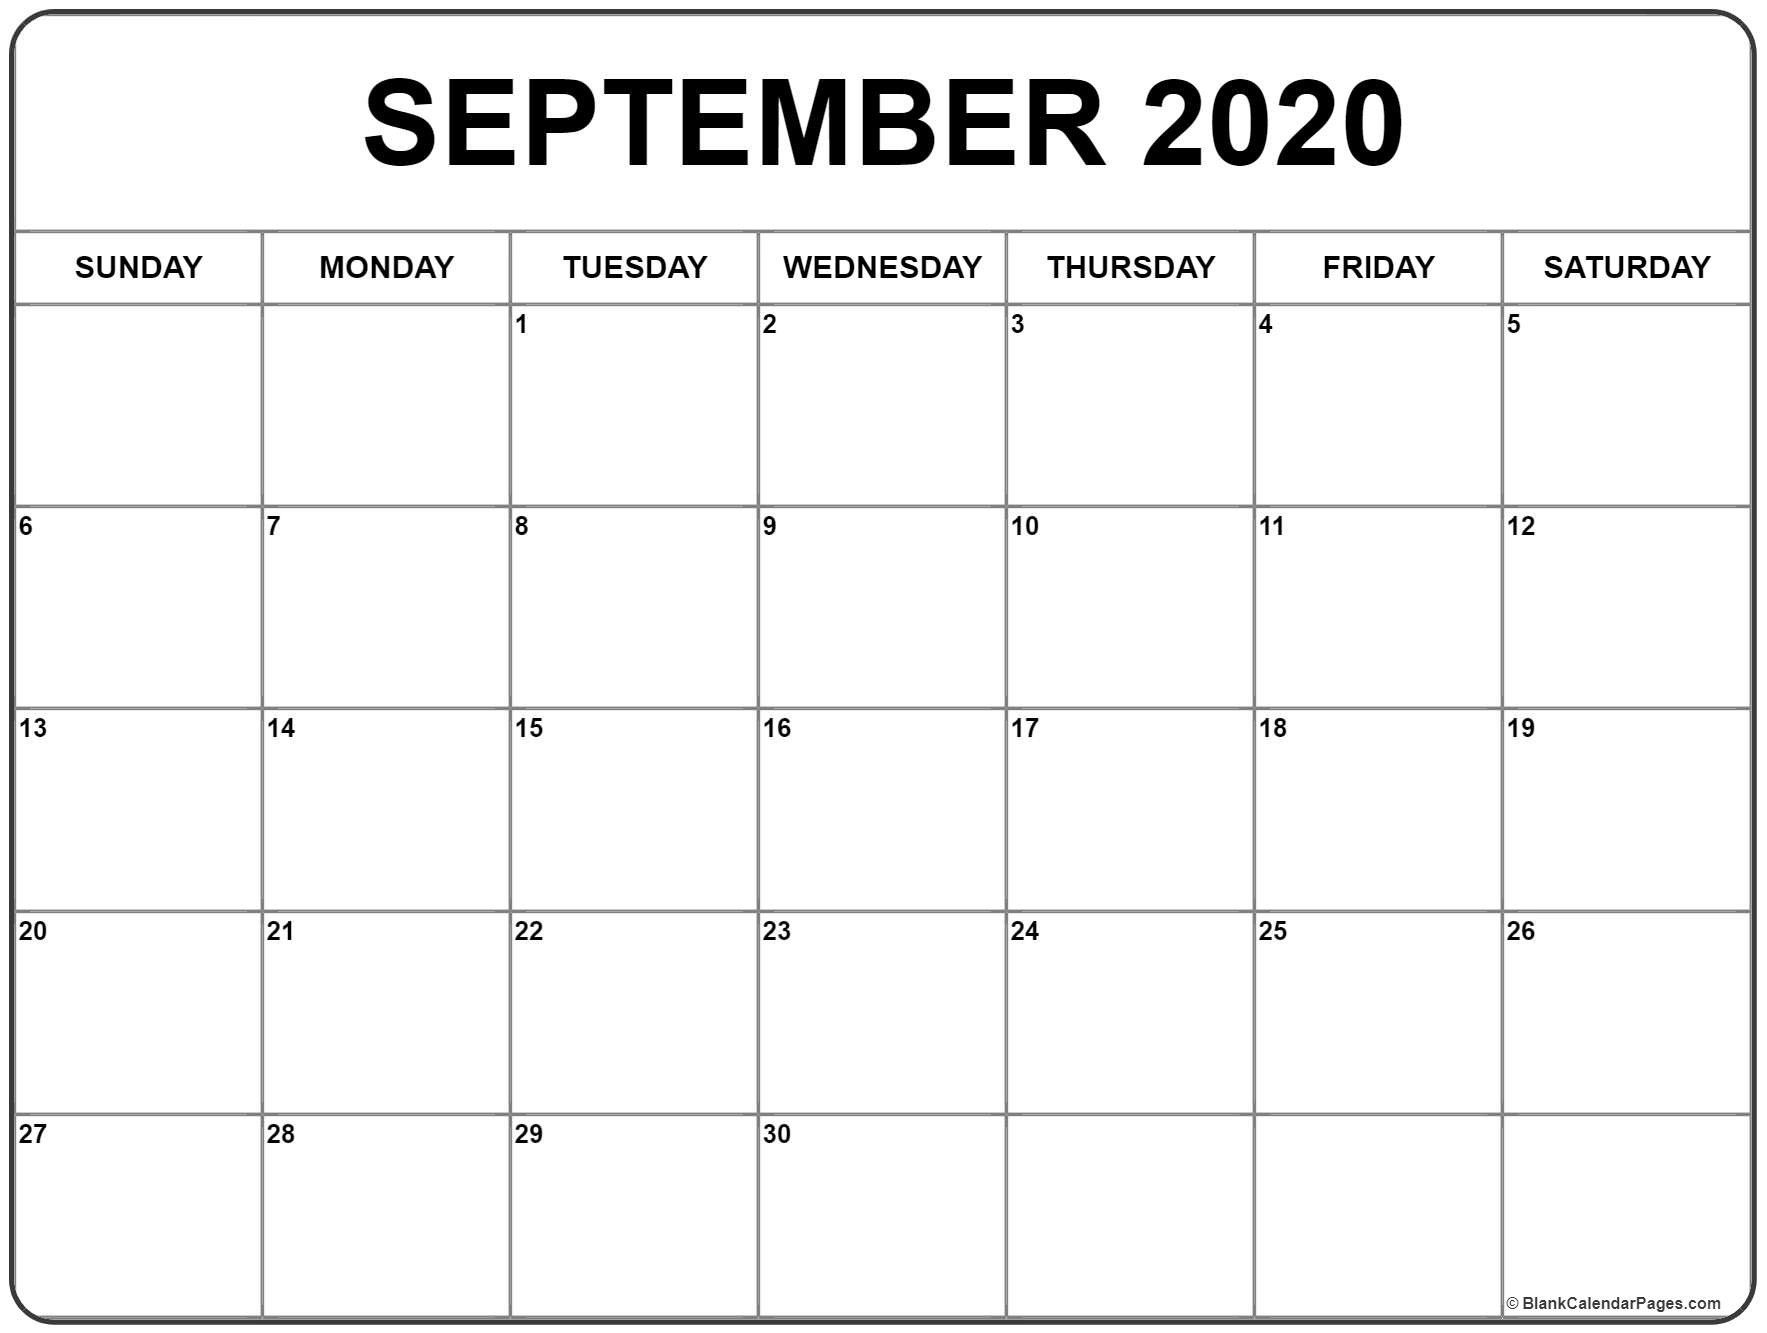 September Calendar 2020 Printable.September 2020 Calendar 51 Calendar Templates Of 2020